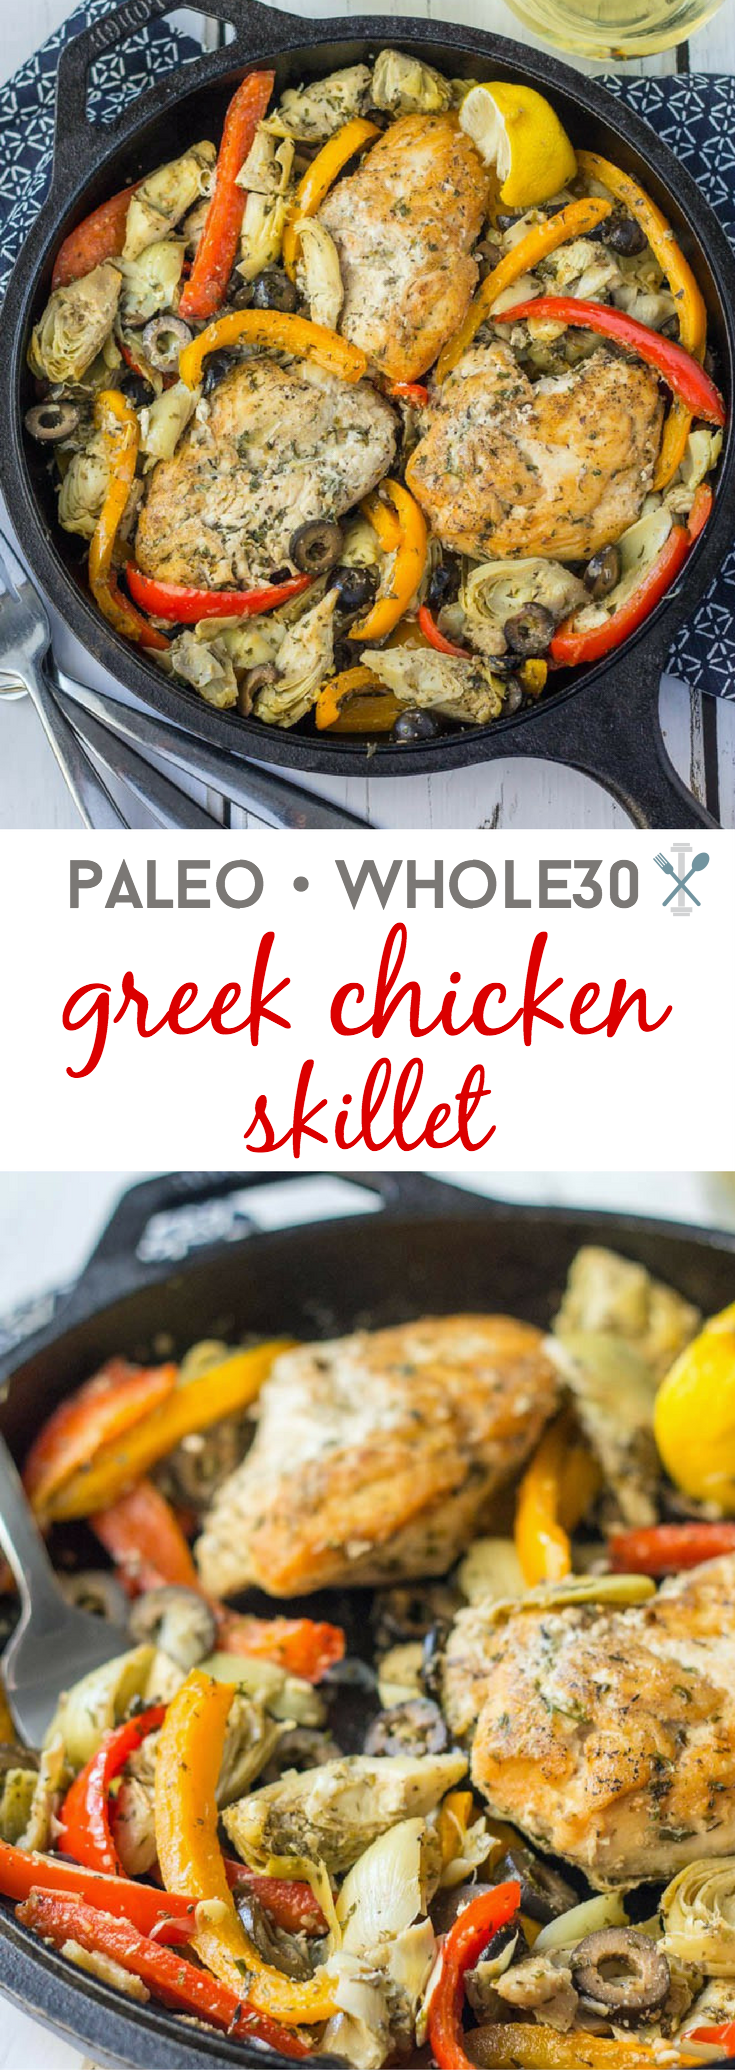 Easy paleo greek chicken skillet paleo whole30 compliant greek chicken skillet forumfinder Choice Image